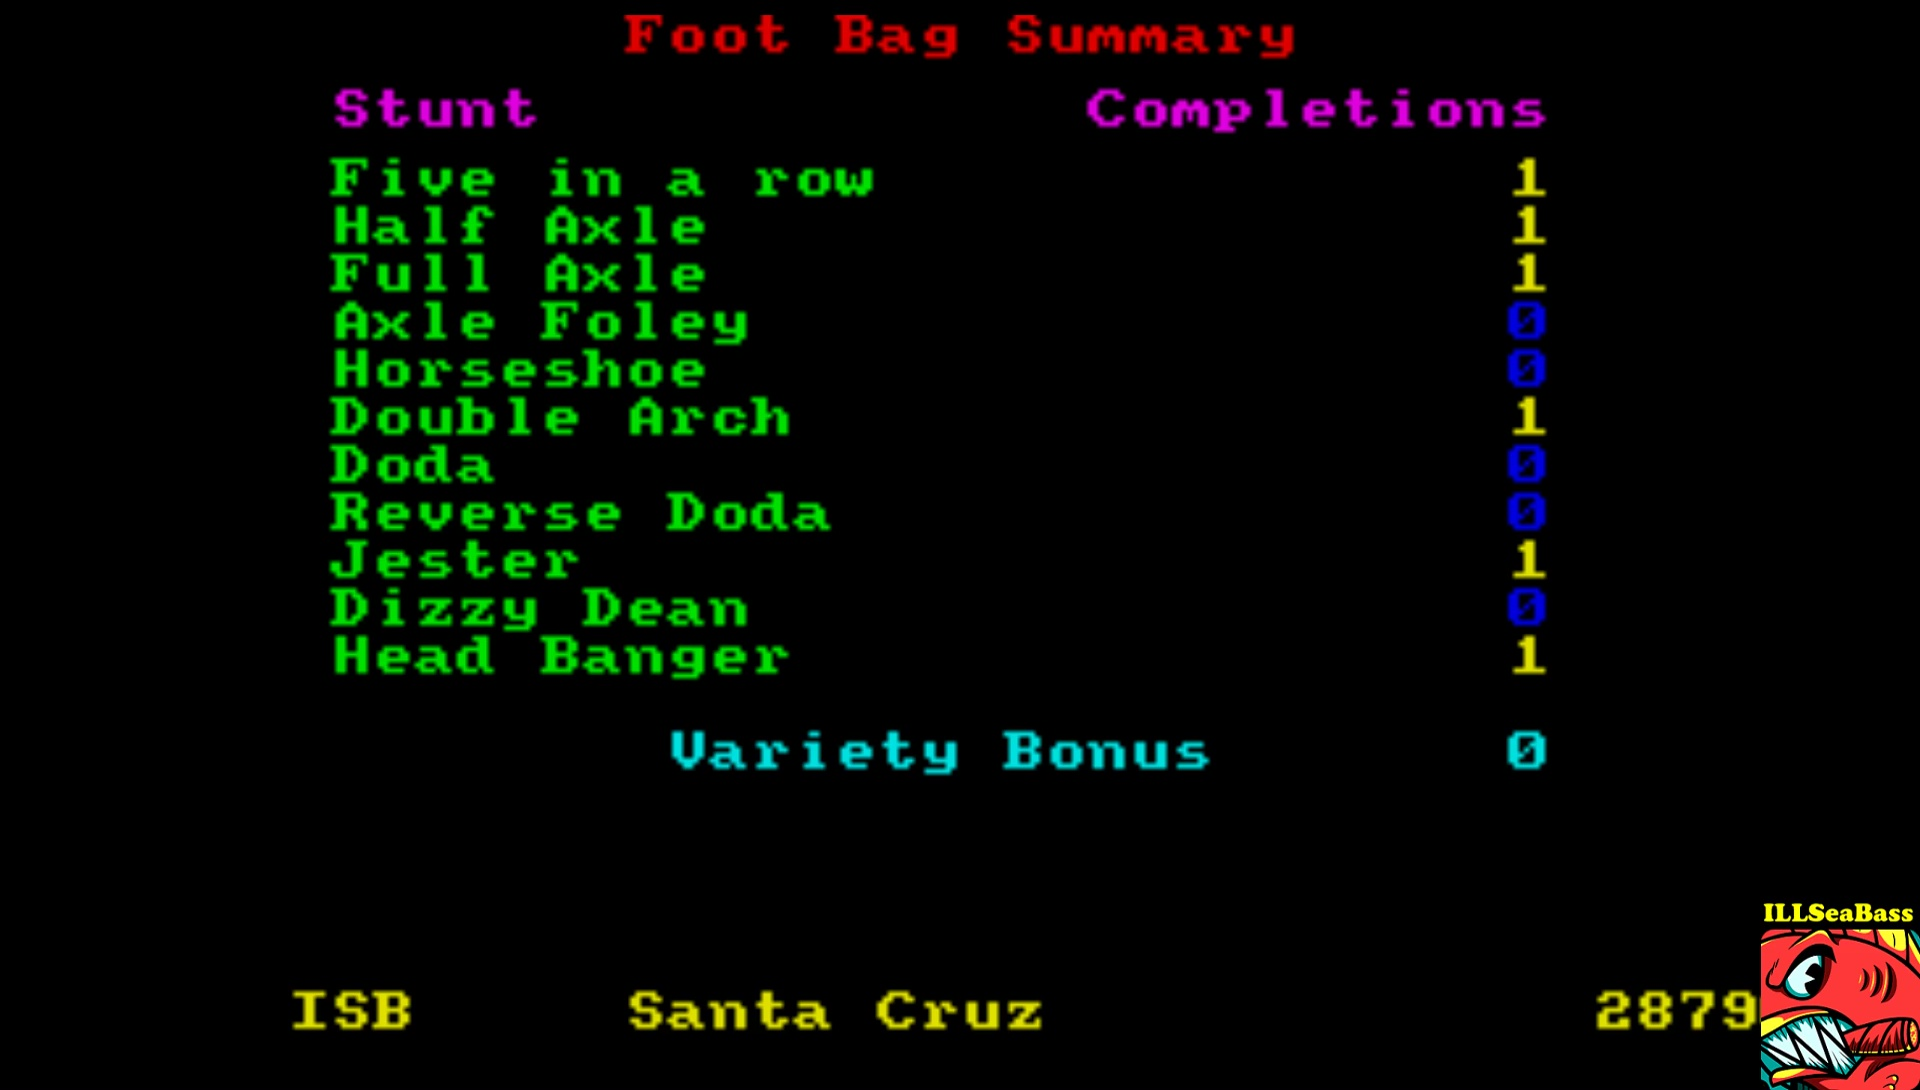 ILLSeaBass: California Games: Foot Bag (Atari ST Emulated) 28,790 points on 2017-03-26 15:39:12